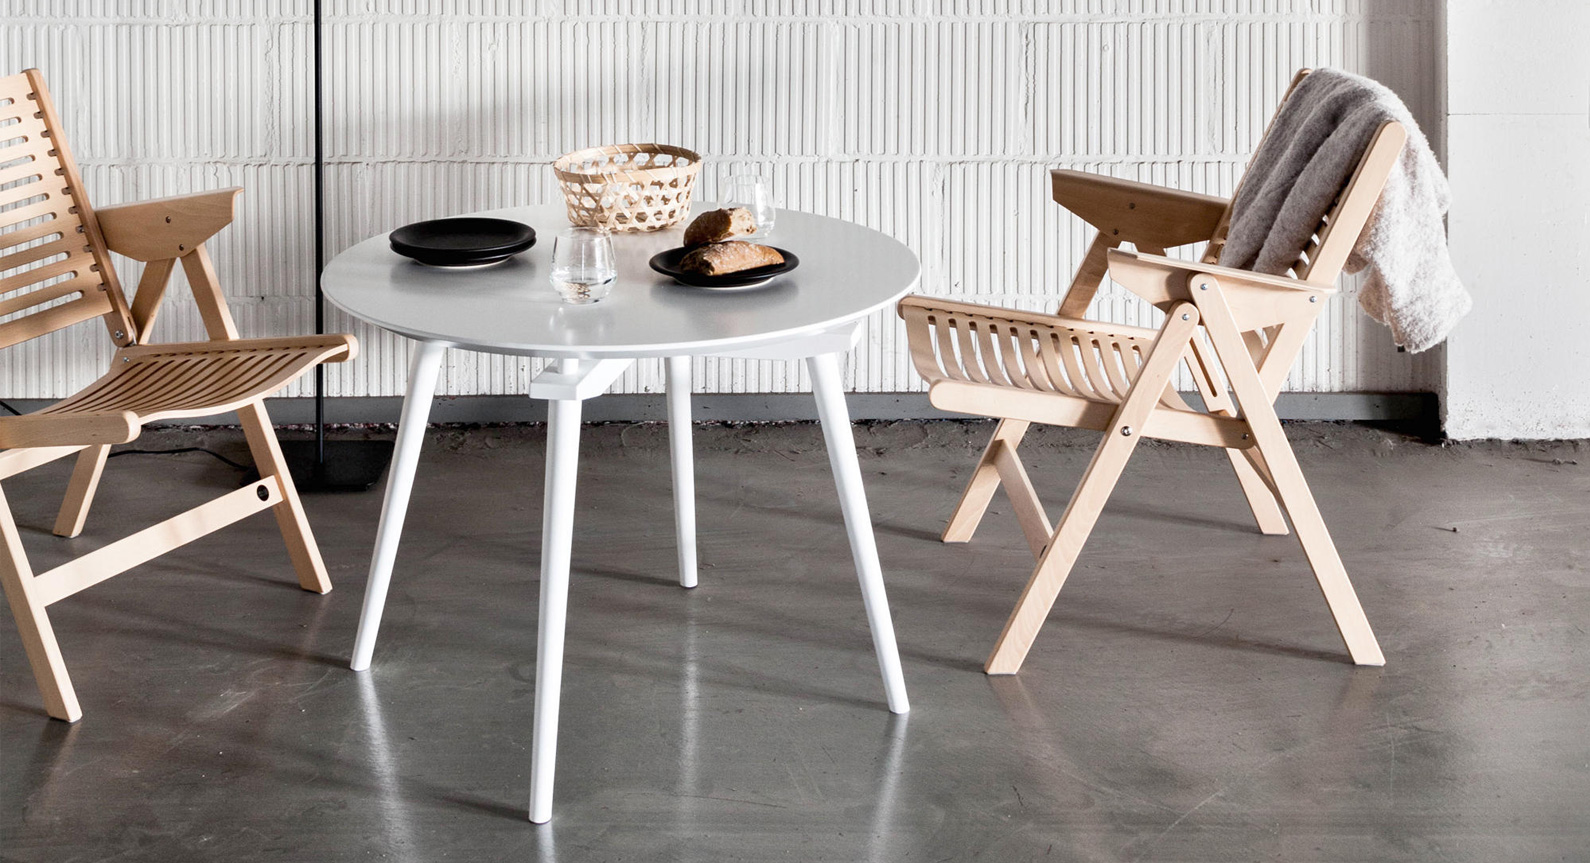 The Rex Kralj Chairs No Home Should Be Without